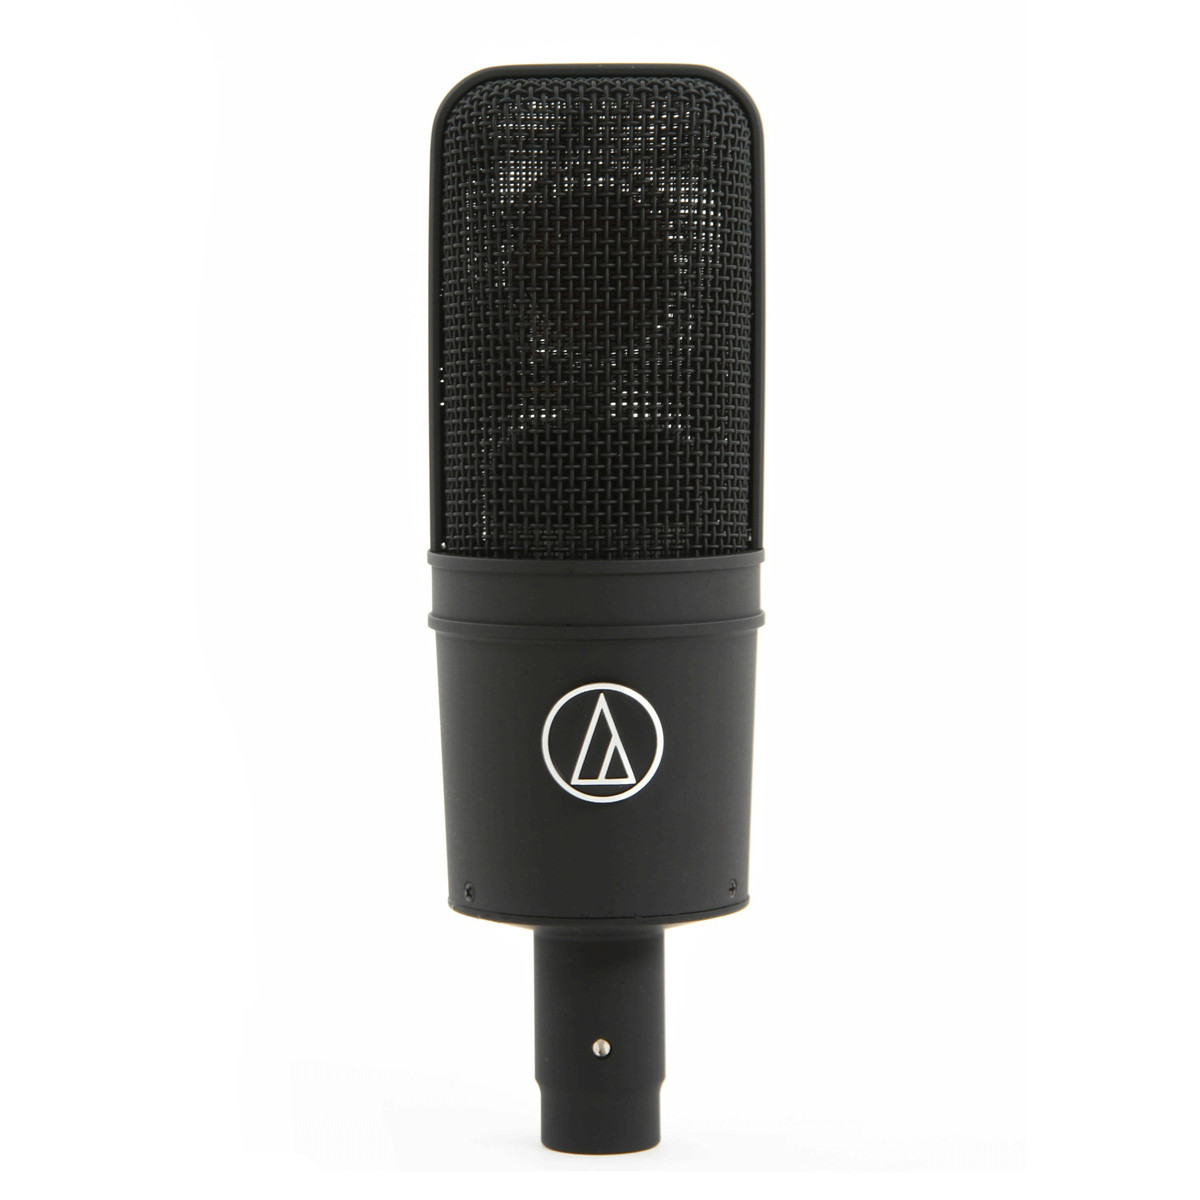 mic-thu-am-at4040-1